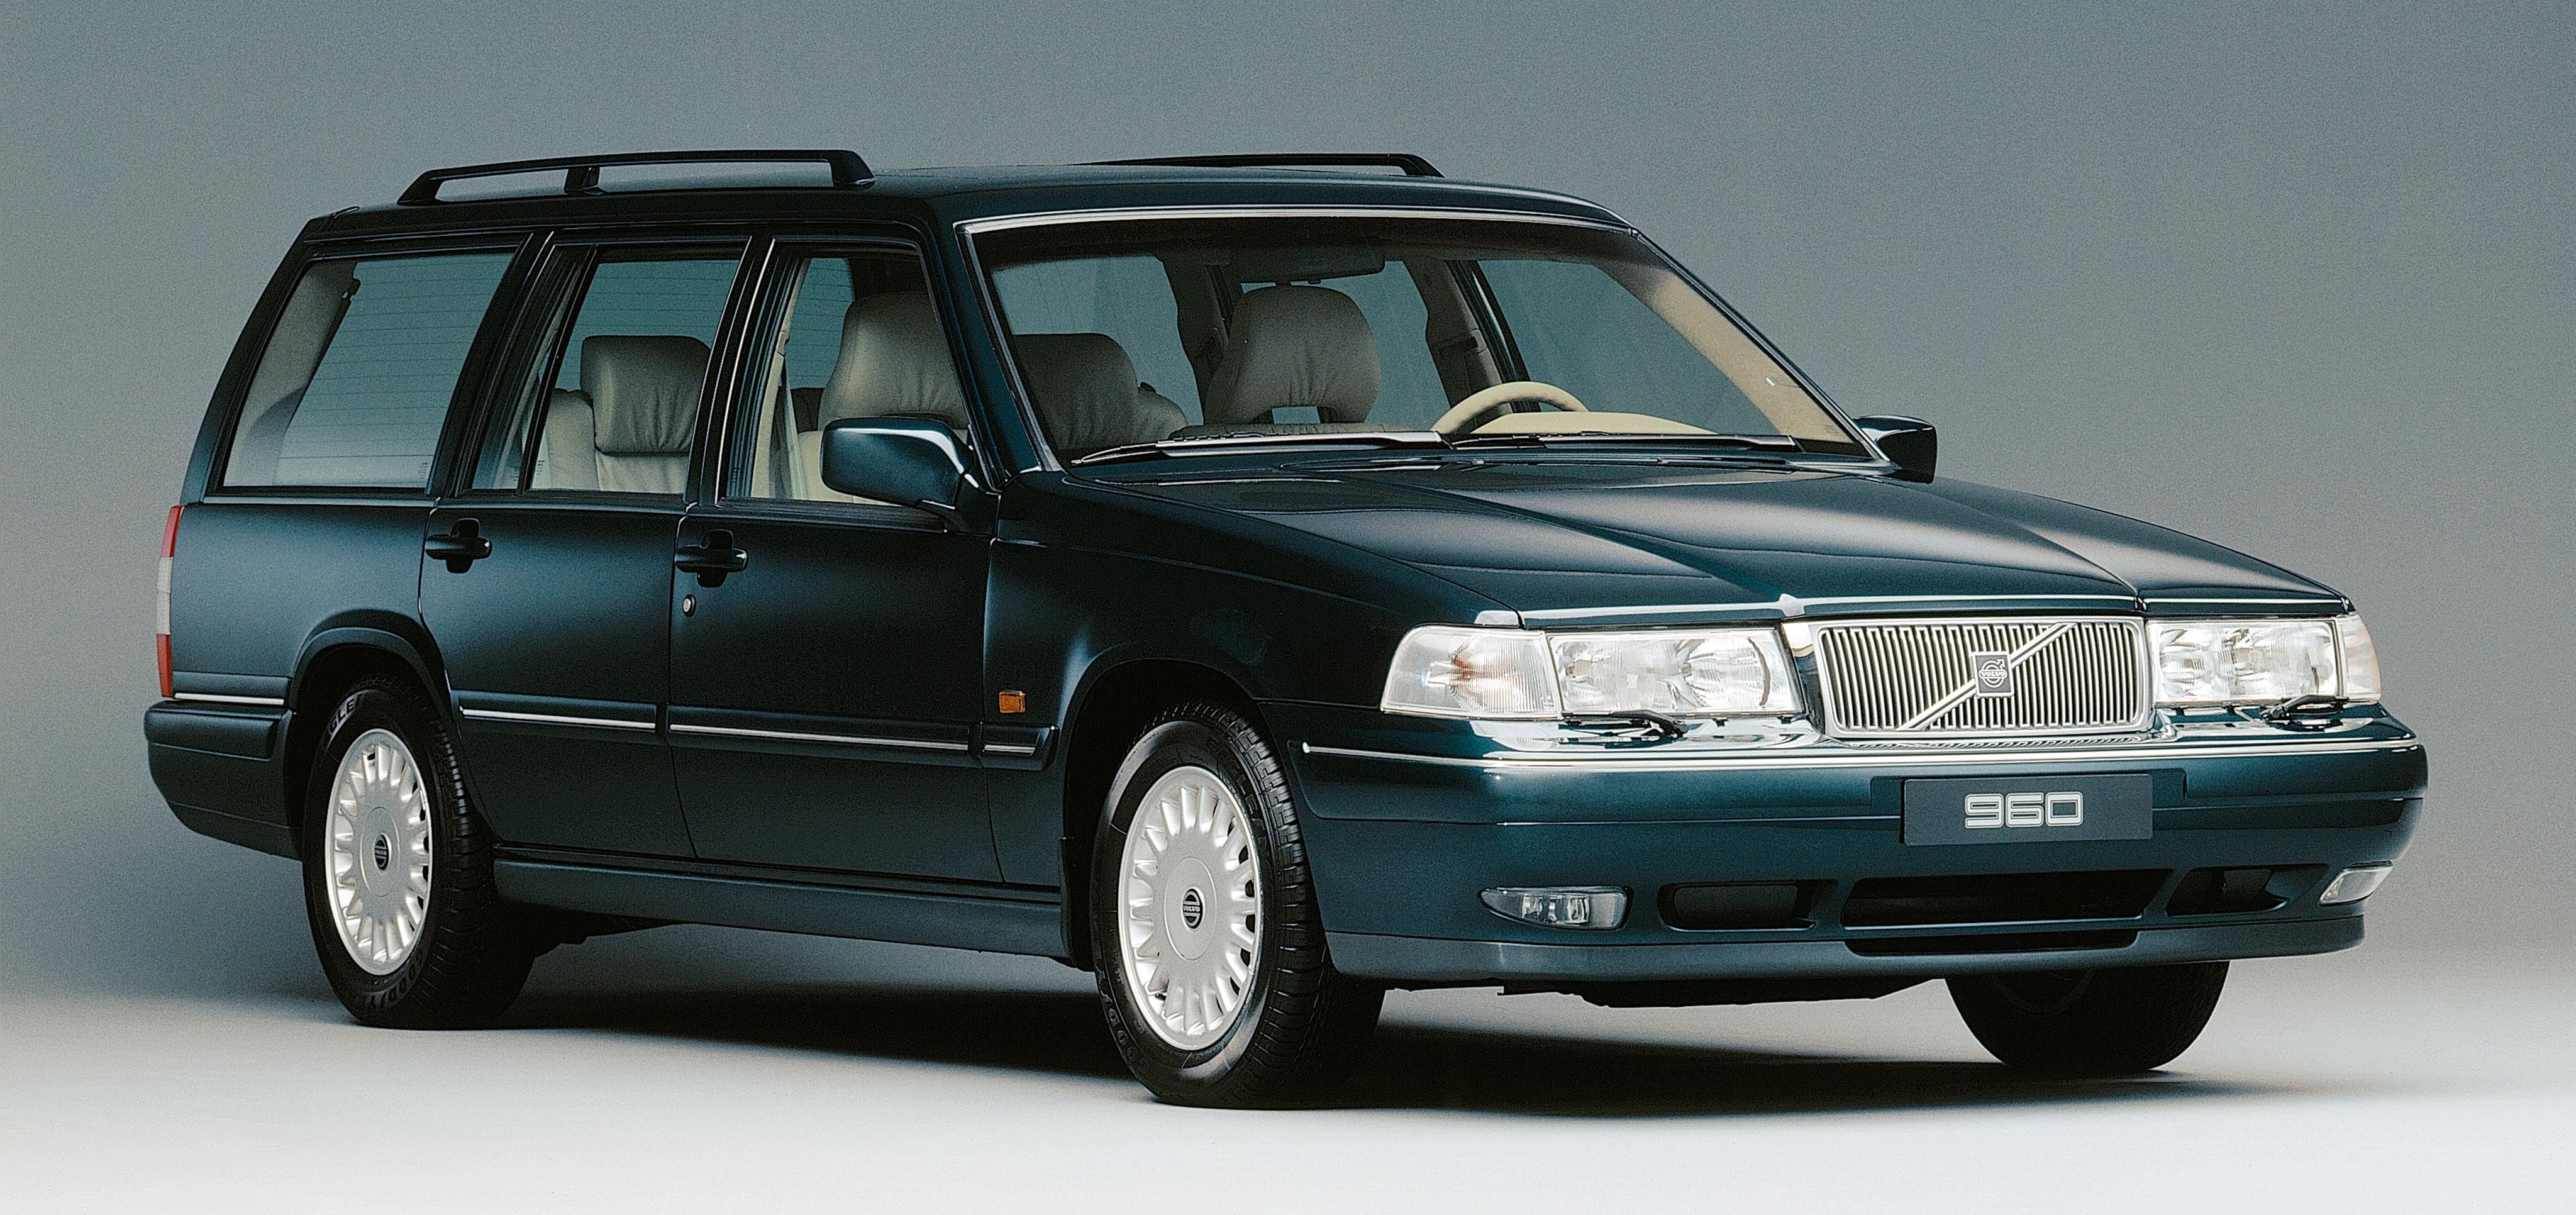 Volvo 960 ESTATE